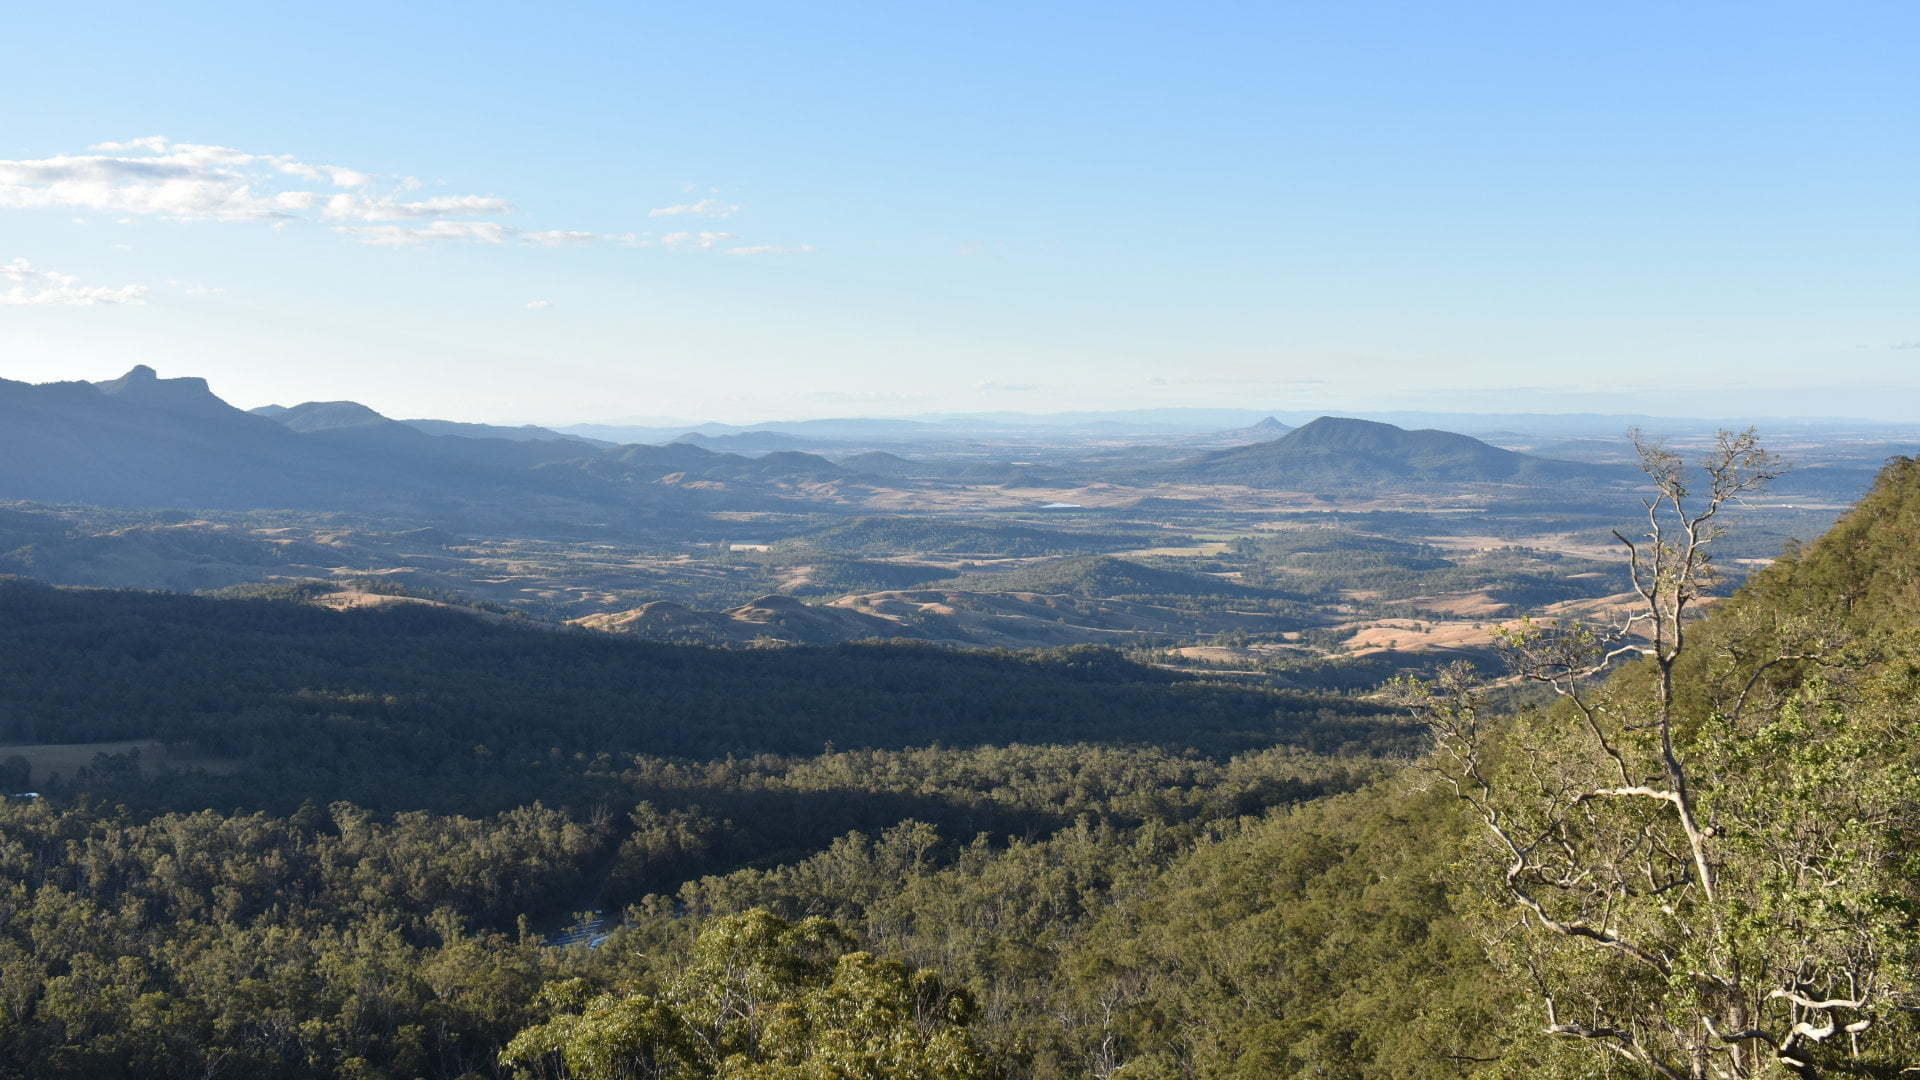 View from a lookout spot along the Mount Mathieson Trail at Spicers Gap in the Main Range National Park